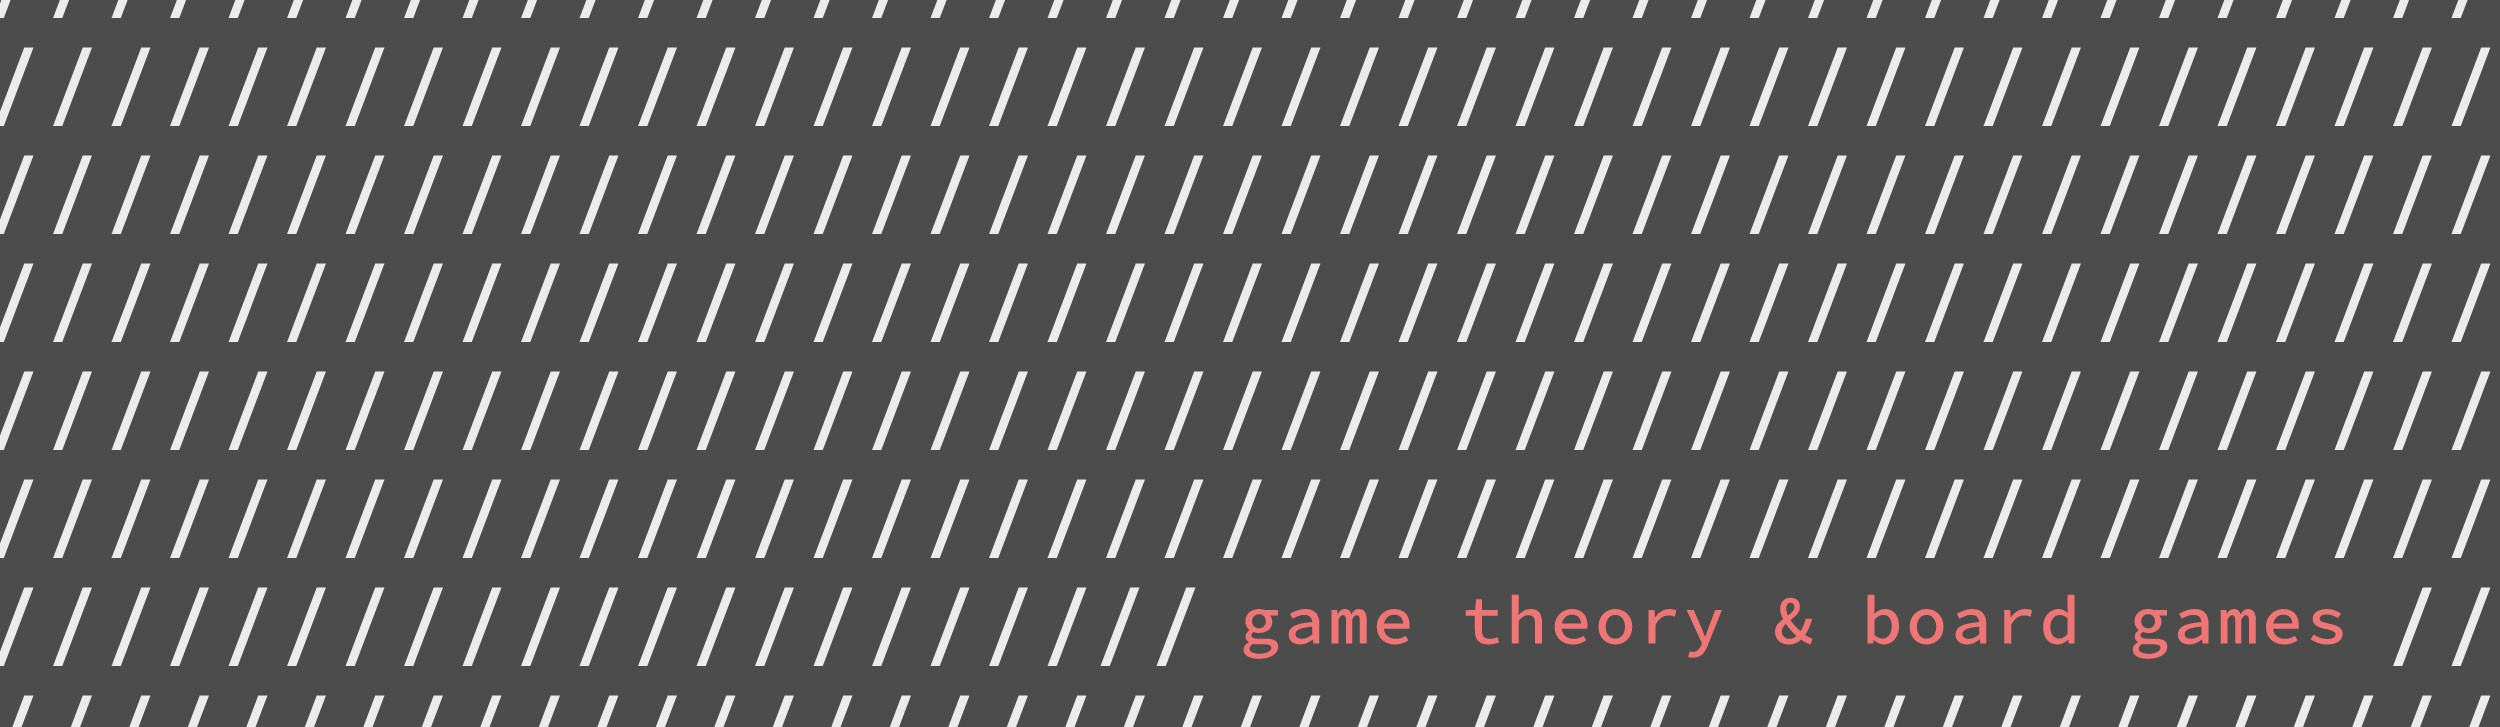 "Dark patterned background with the words, ""game theory & board games"" typed in the lower right corner."